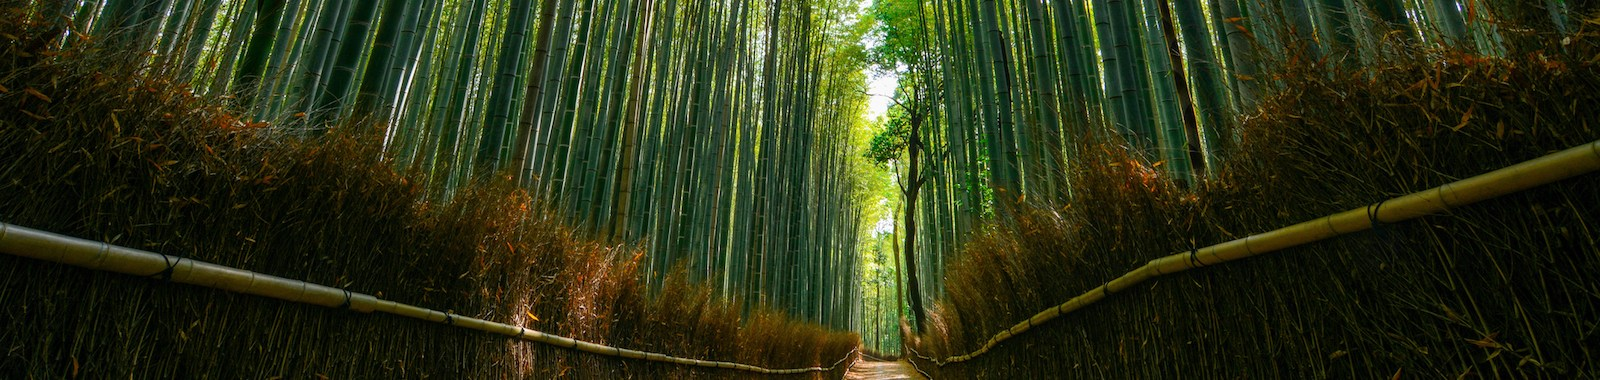 Faint daylight illuminating the beautiful forest of huge bamboo in the Arashiyama area of Kyoto, Japan.